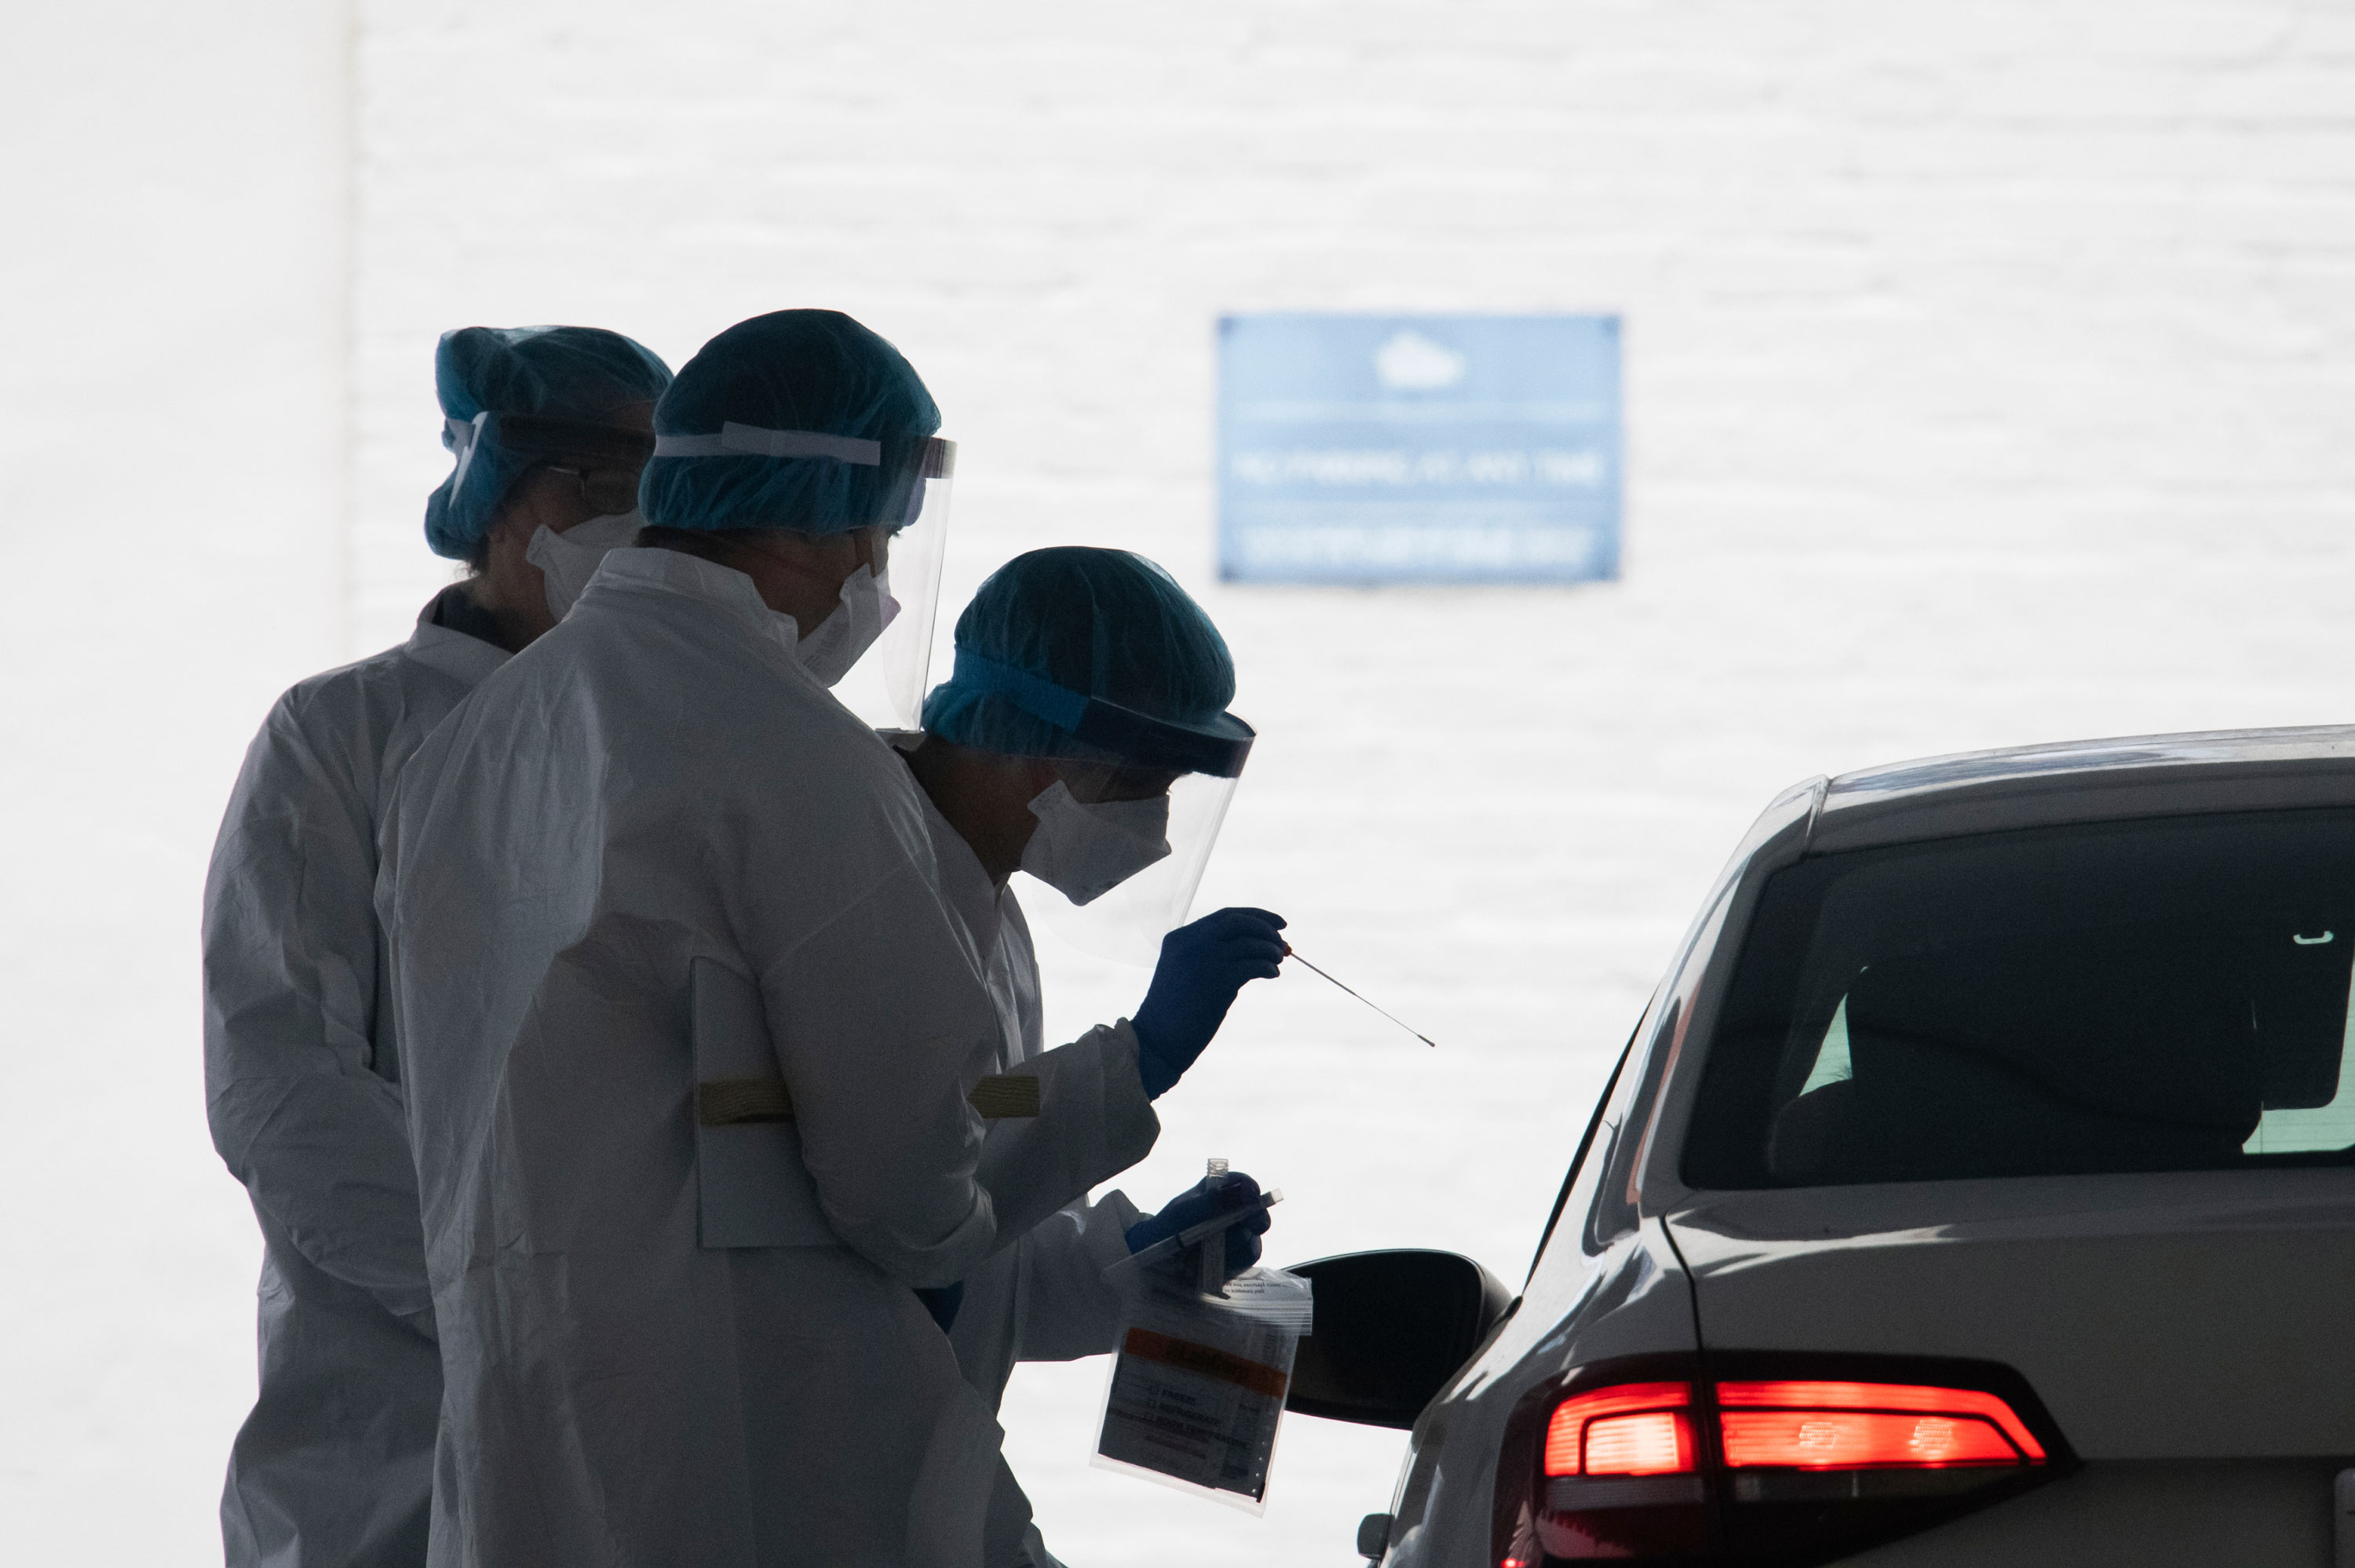 A healthcare worker takes a test swab of an individual at a drive-thru testing facility at George Washington University in Washington, on April 23.